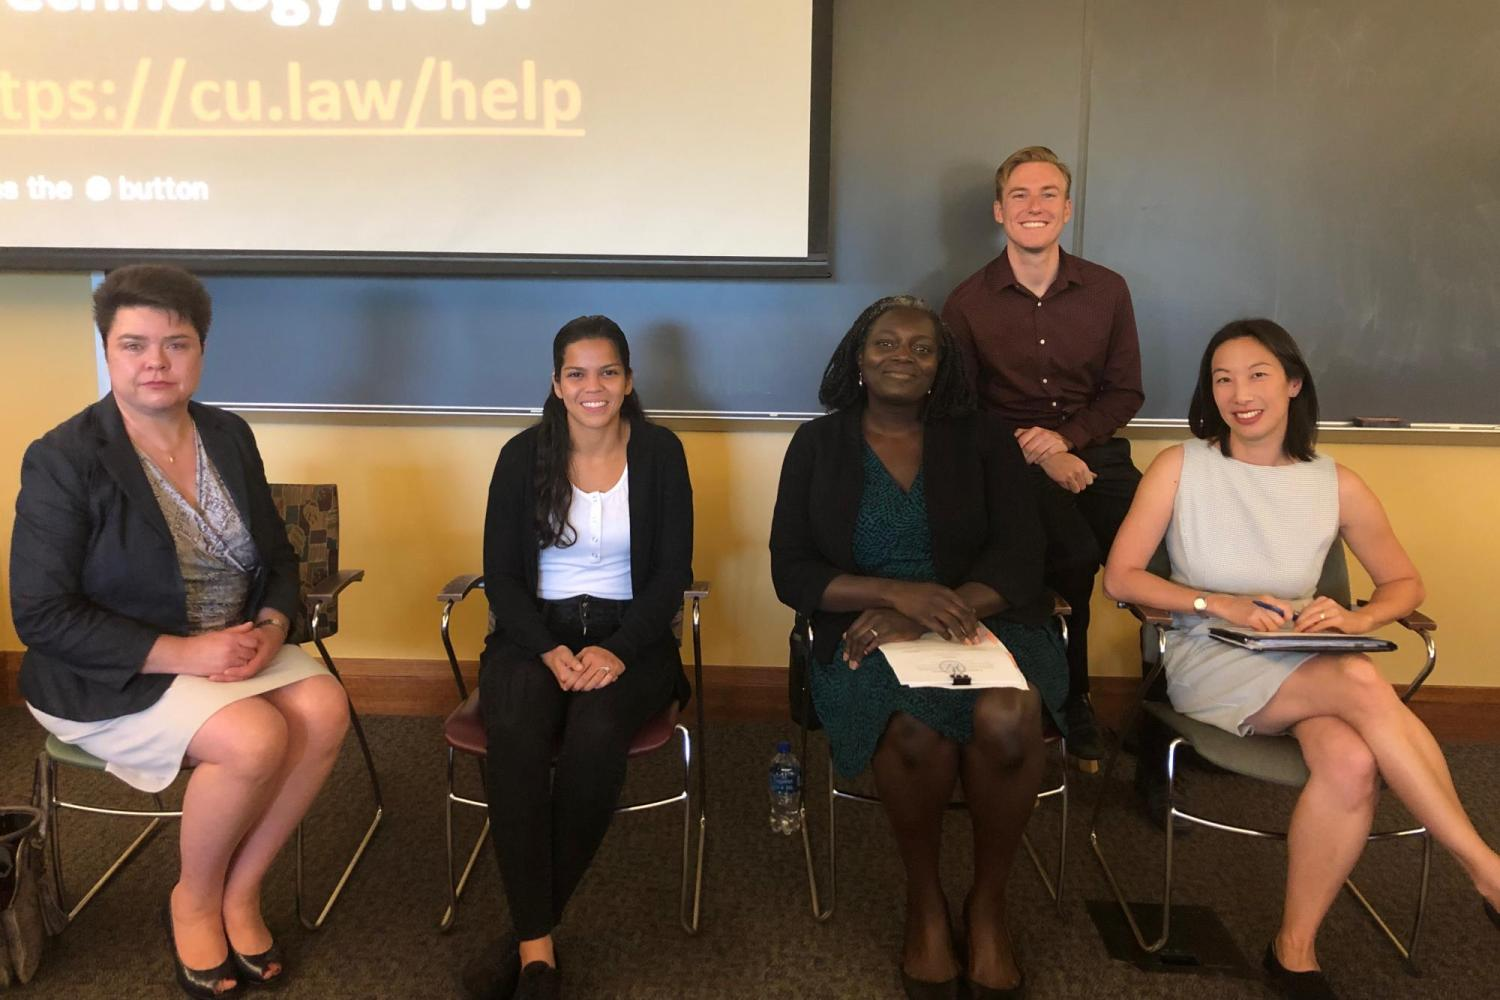 Citizenship Day 2019 Panel Discussion for Immigration Law and Policy Society. L-R Jennifer Kain-Rios, Nicole Soto Quintero (Class of 2021), Atim Otii, Hunter Knapp (Class of 2020, ILPS Board), Ming Hsu Chen (ILPS Faculty-Advisor)